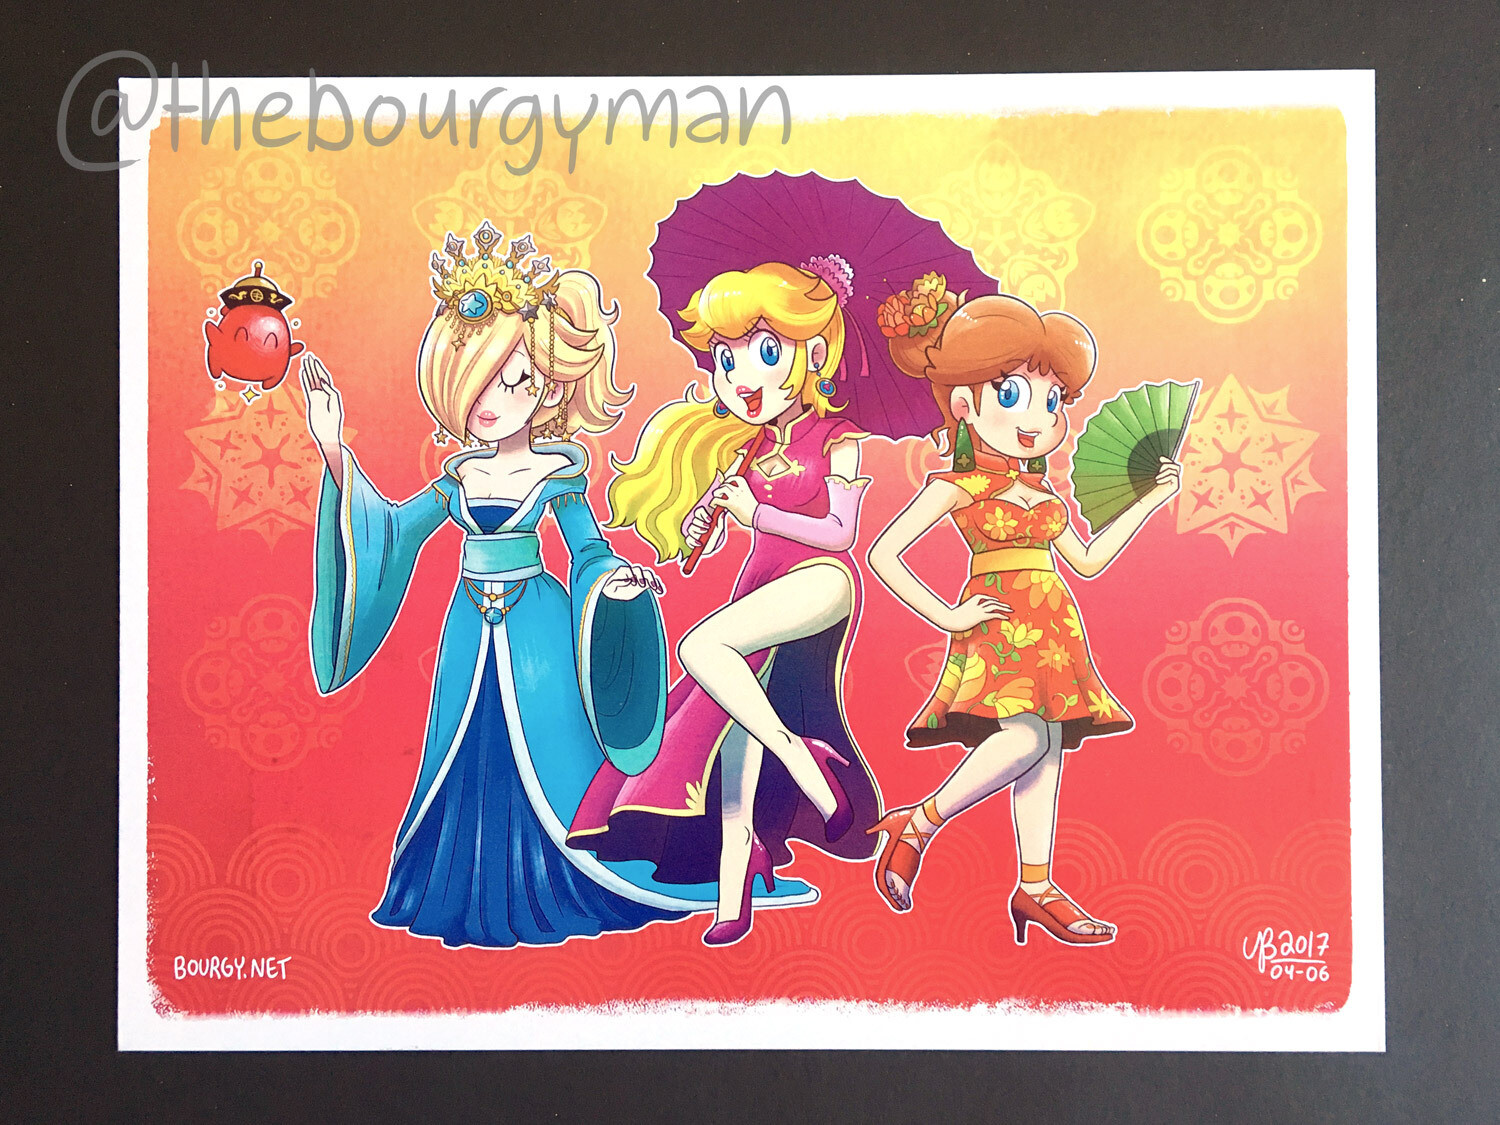 Chinese Dress Princesses (Super Mario) poster/affiche